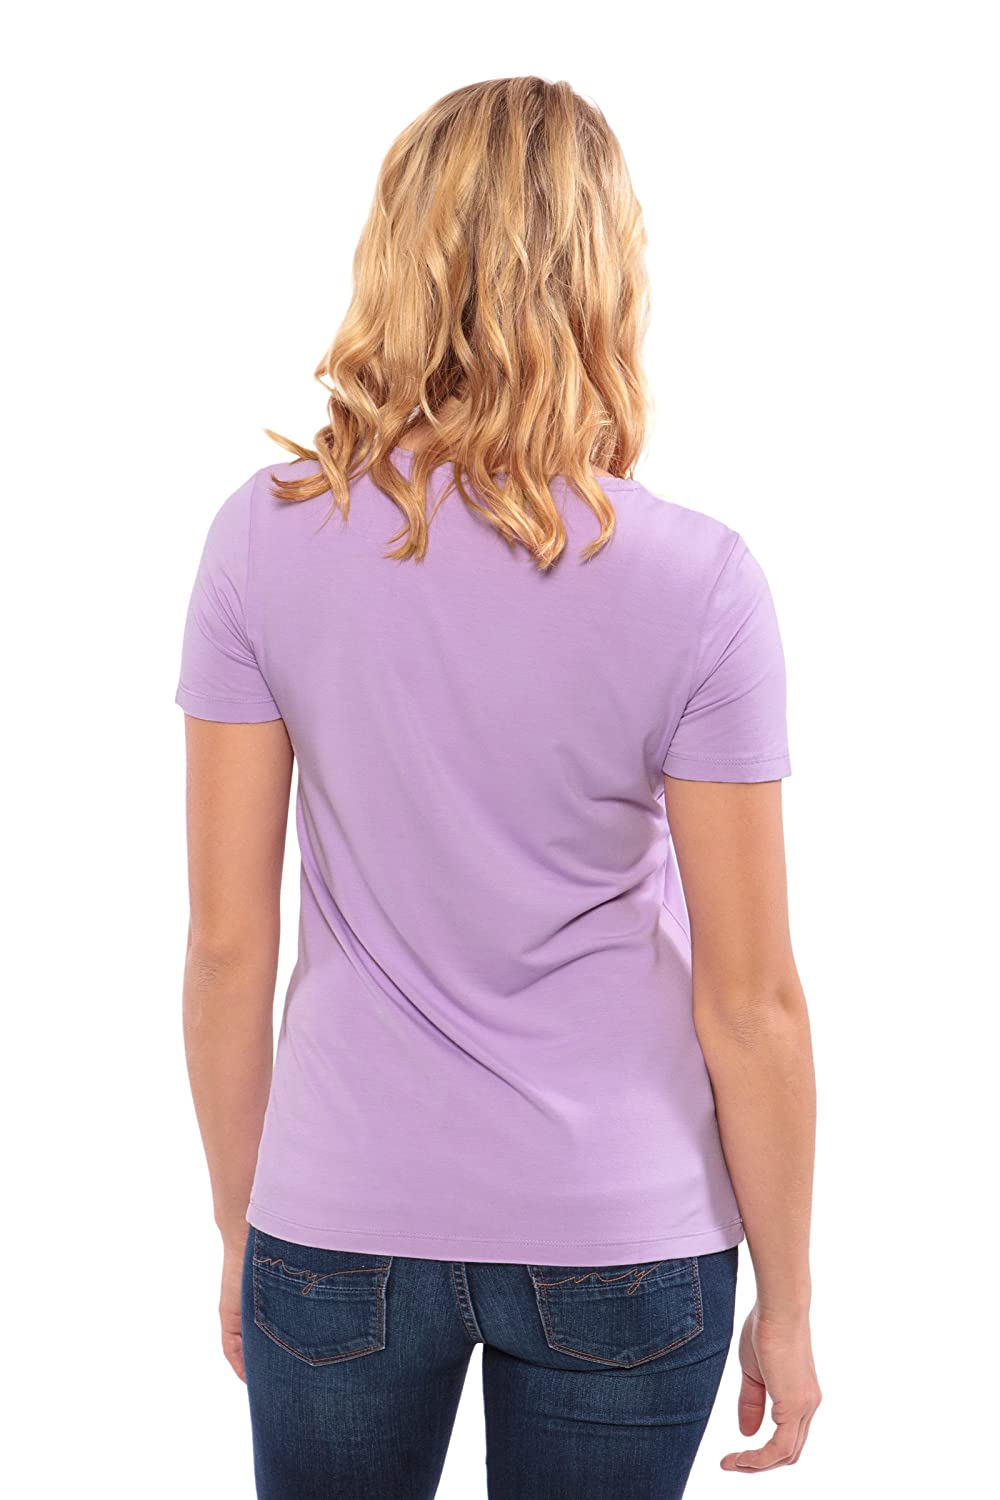 Womens Short Sleeve T-Shirt Bamboo Viscose Top by Texere Spring Zing